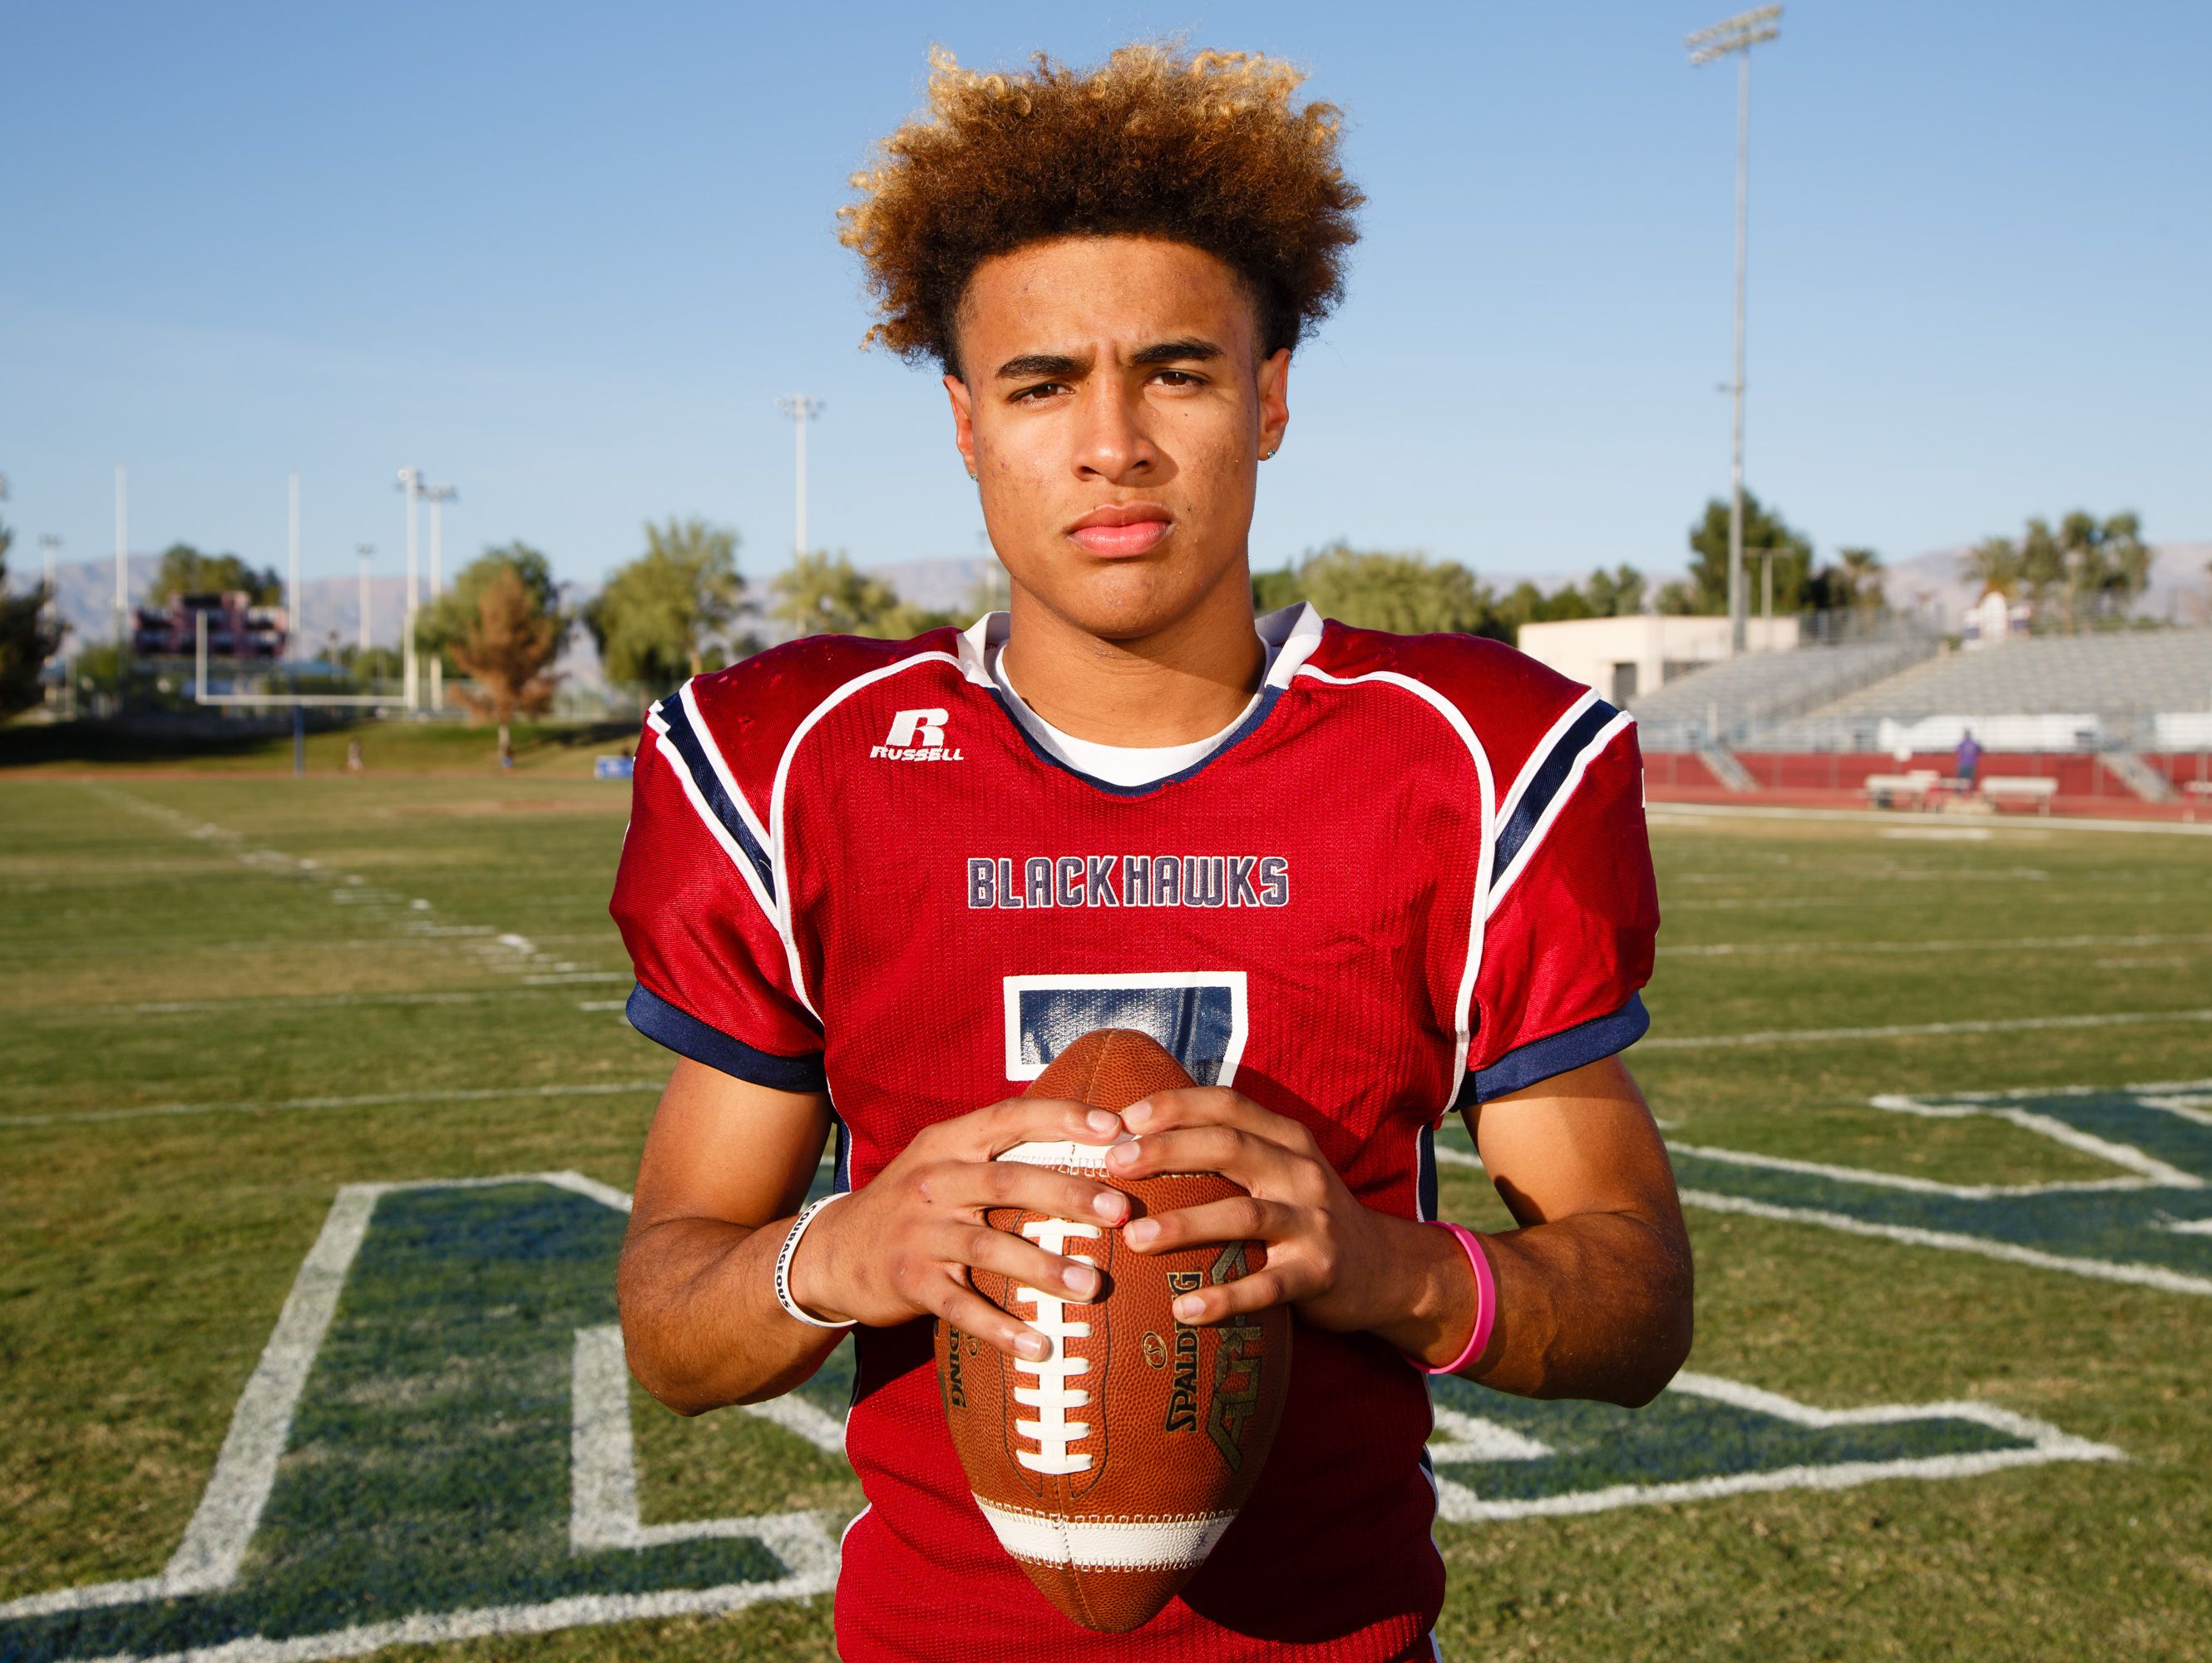 Justin Anderson, a quarterback and wide reciever for La Quinta, will play with the Blackhawks in their first round playoff game this Friday, Wednesday, November 9, 2016.